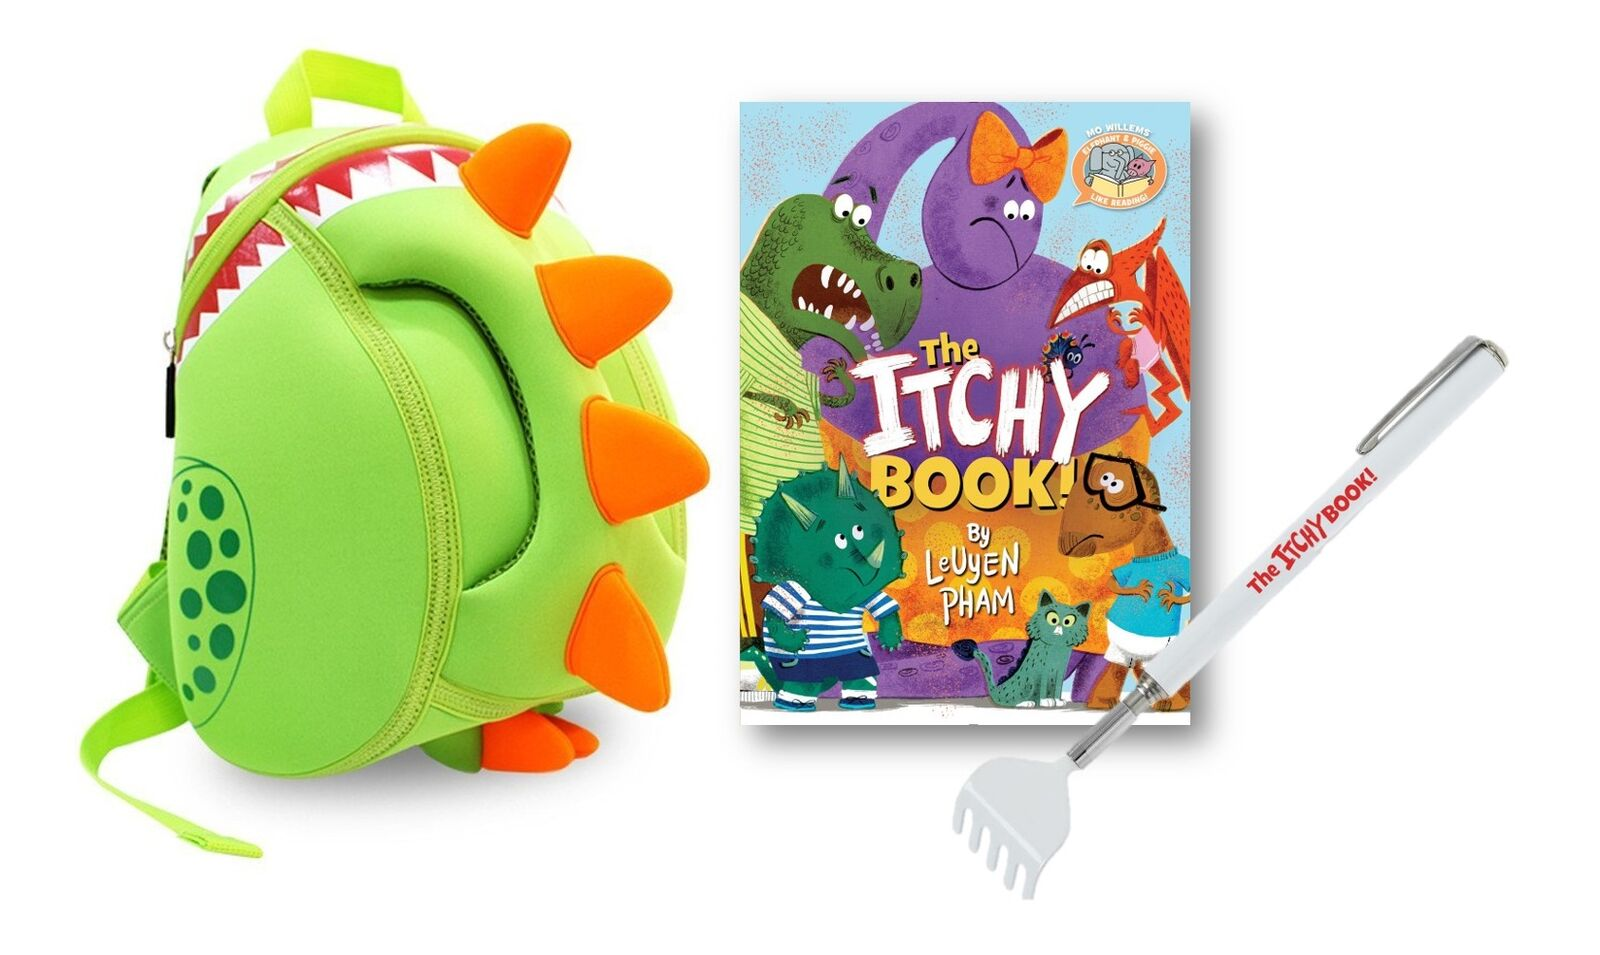 The Itchy Book Summer Prize Pack